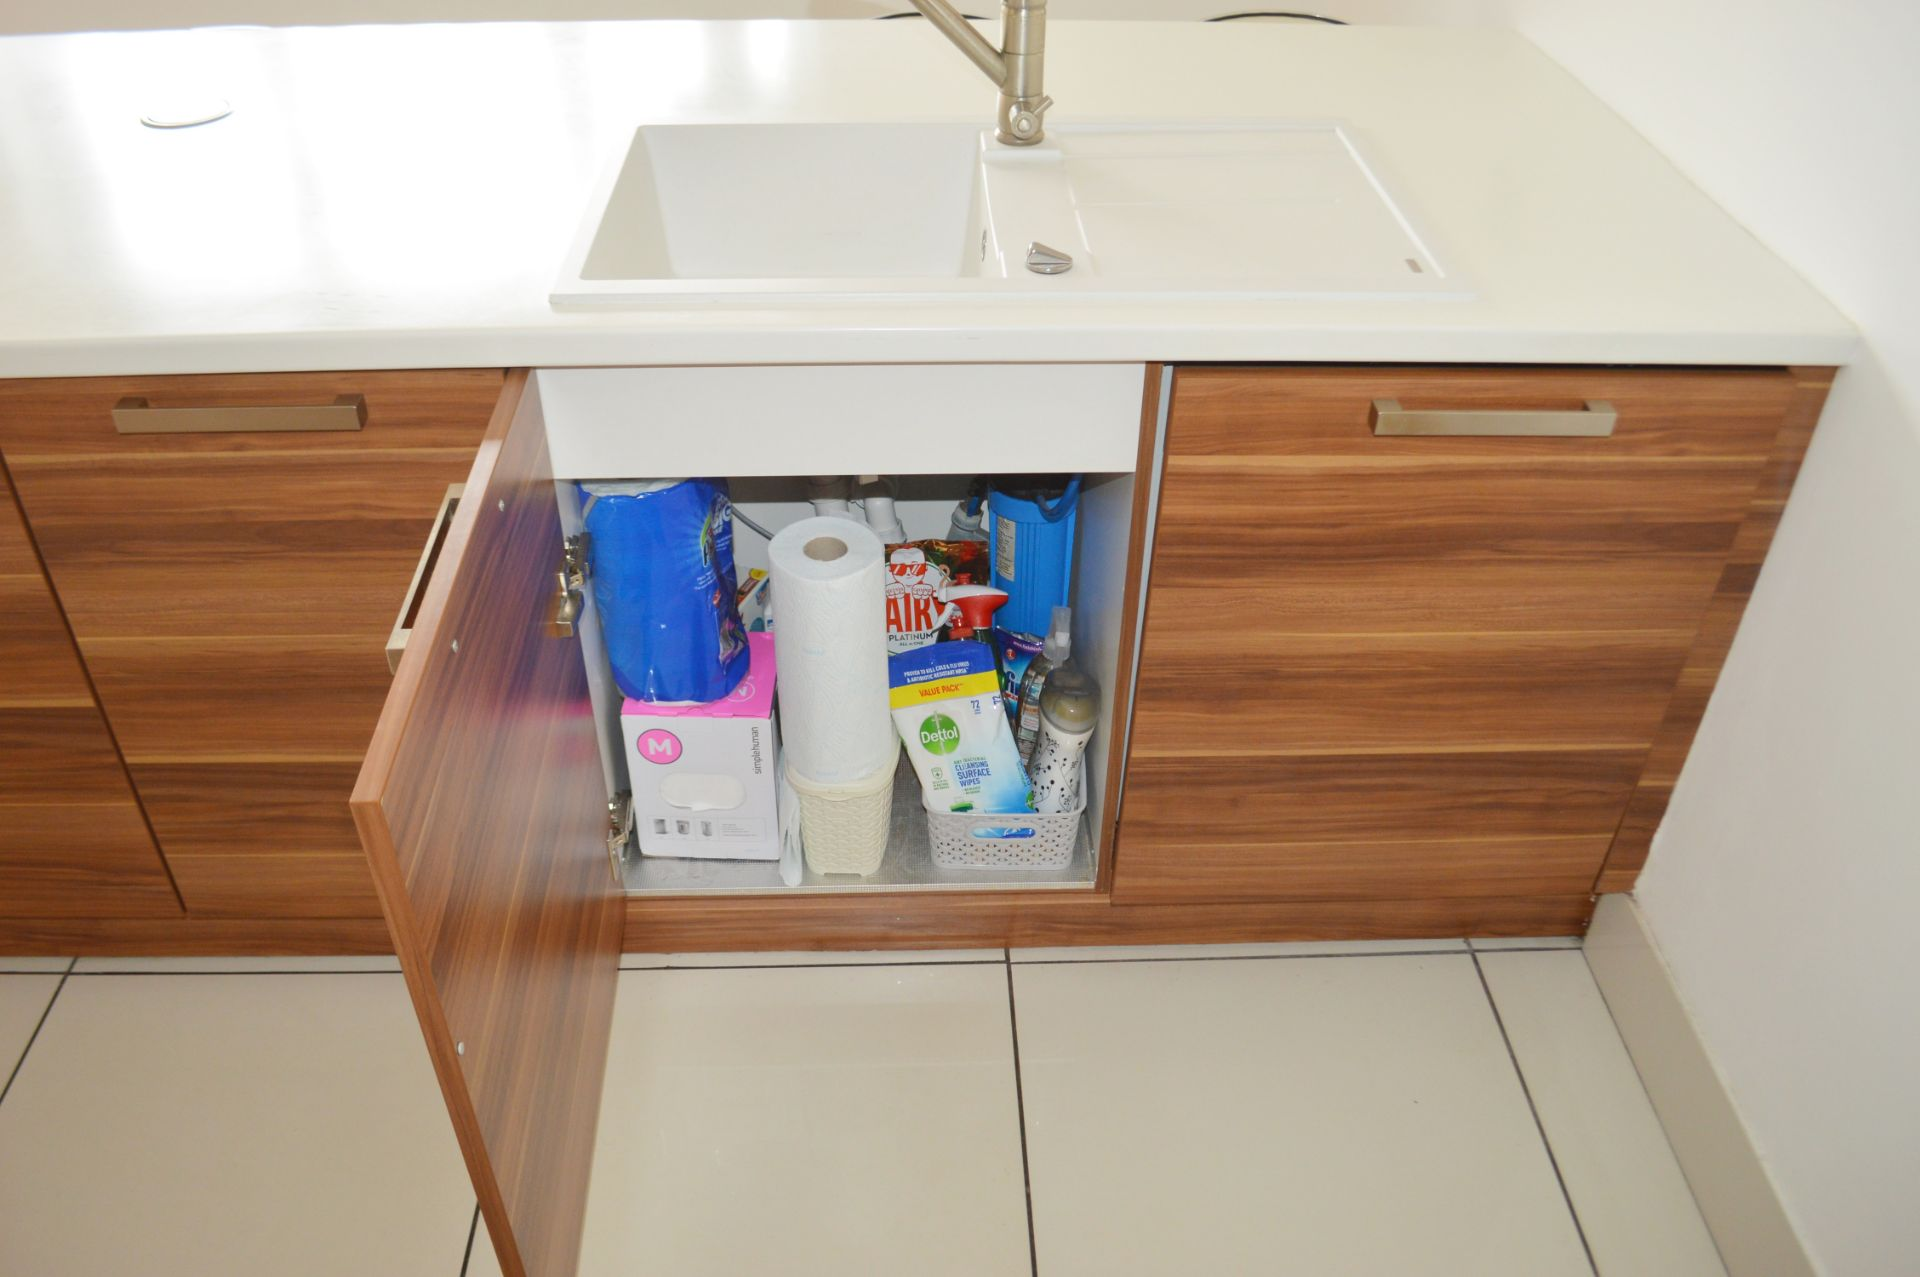 1 x Contemporary Bespoke Fitted Kitchen With Integrated Neff Branded Appliances, Quartz Worktops - Image 36 of 52